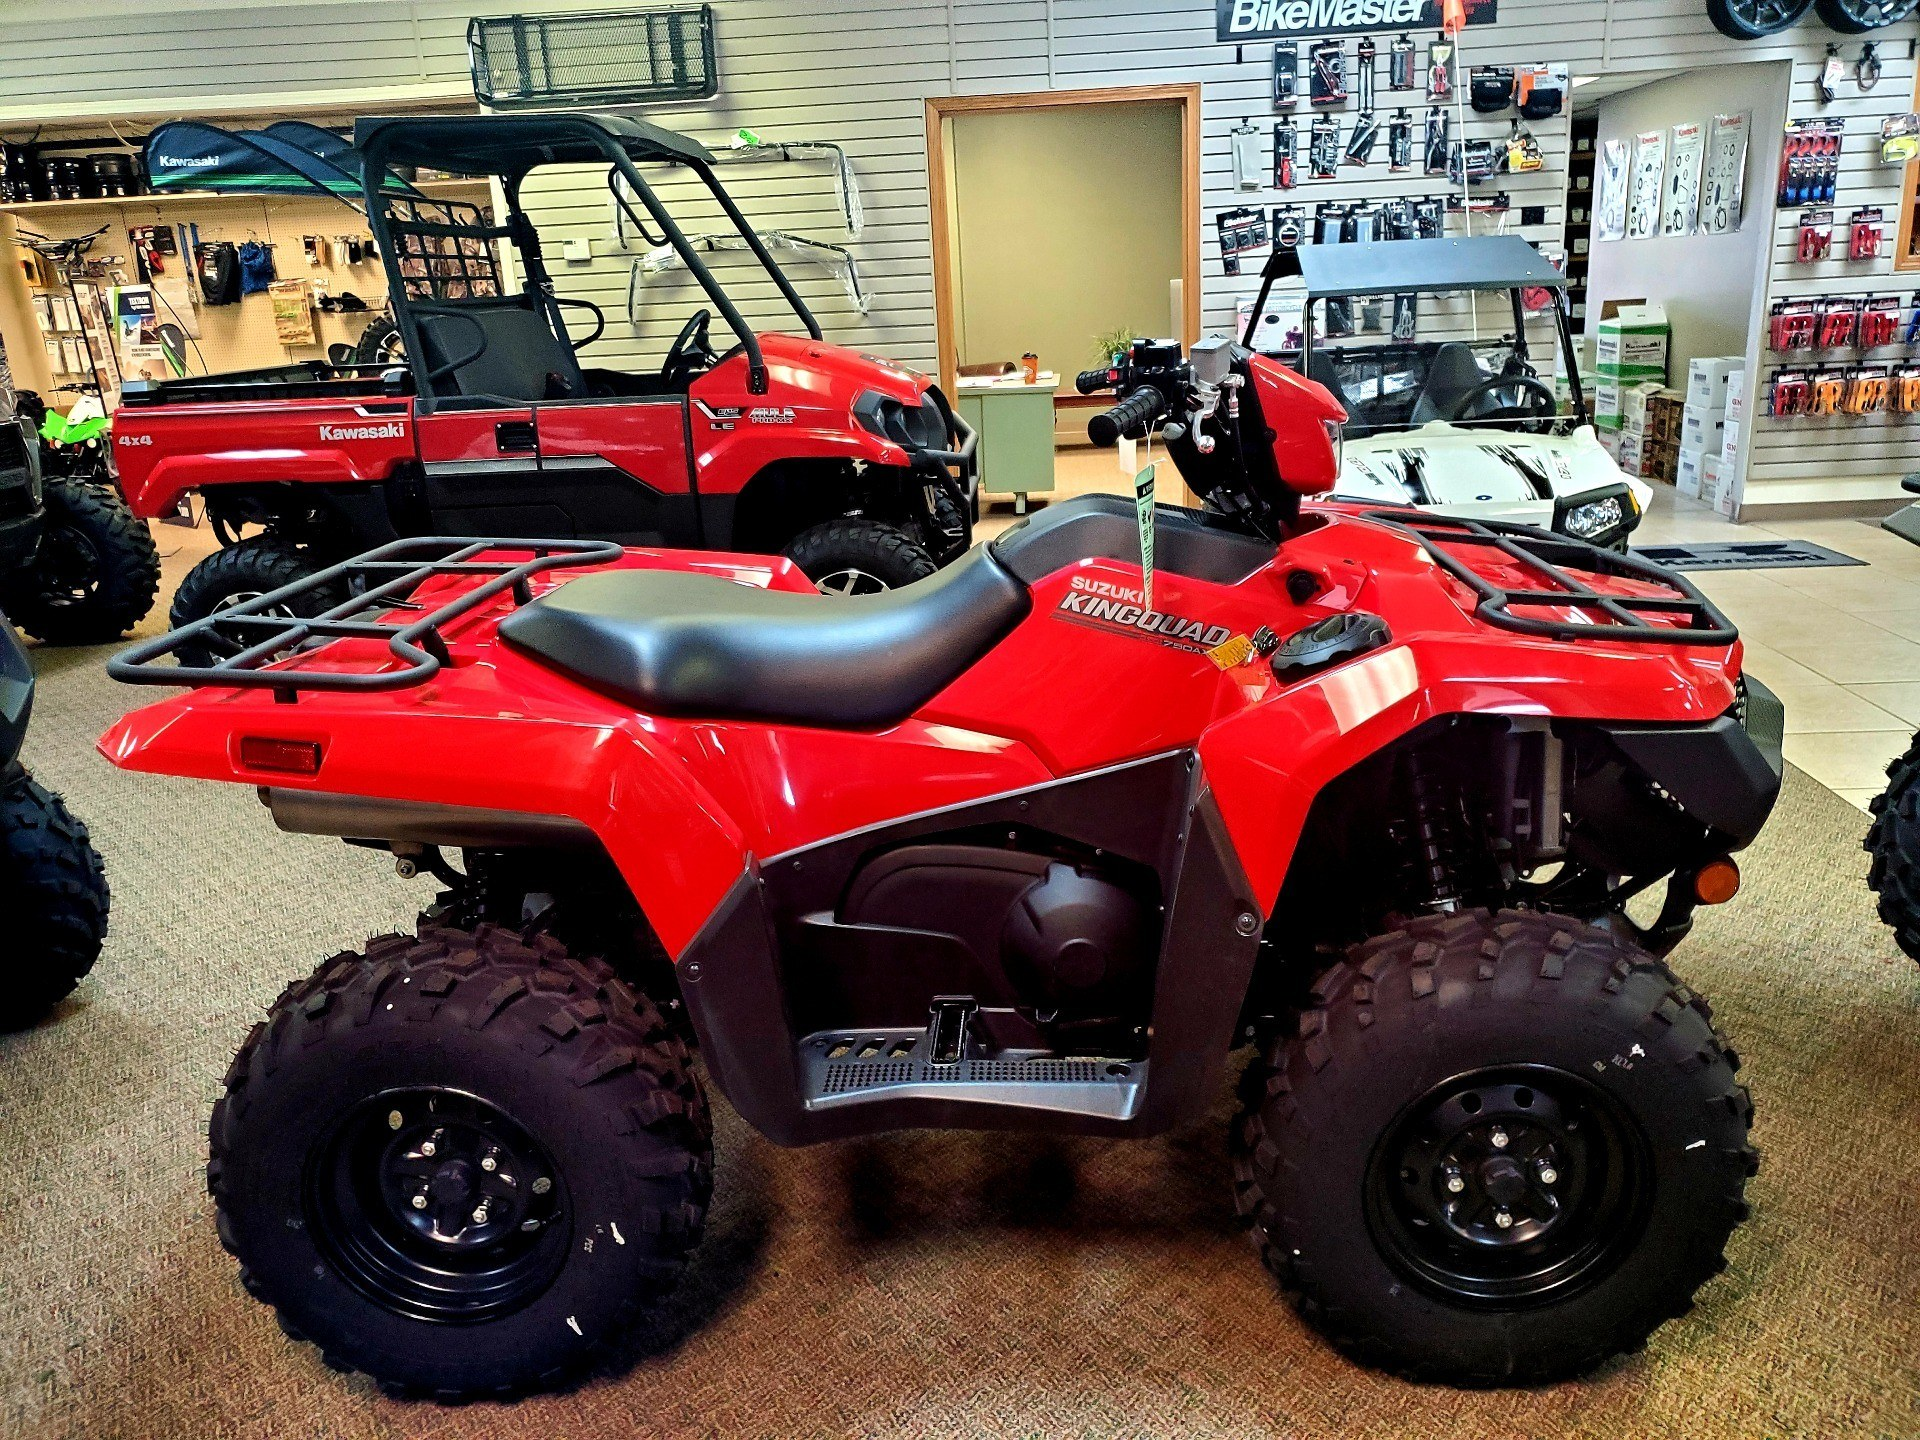 2020 Suzuki KingQuad 750AXi in Jackson, Missouri - Photo 5